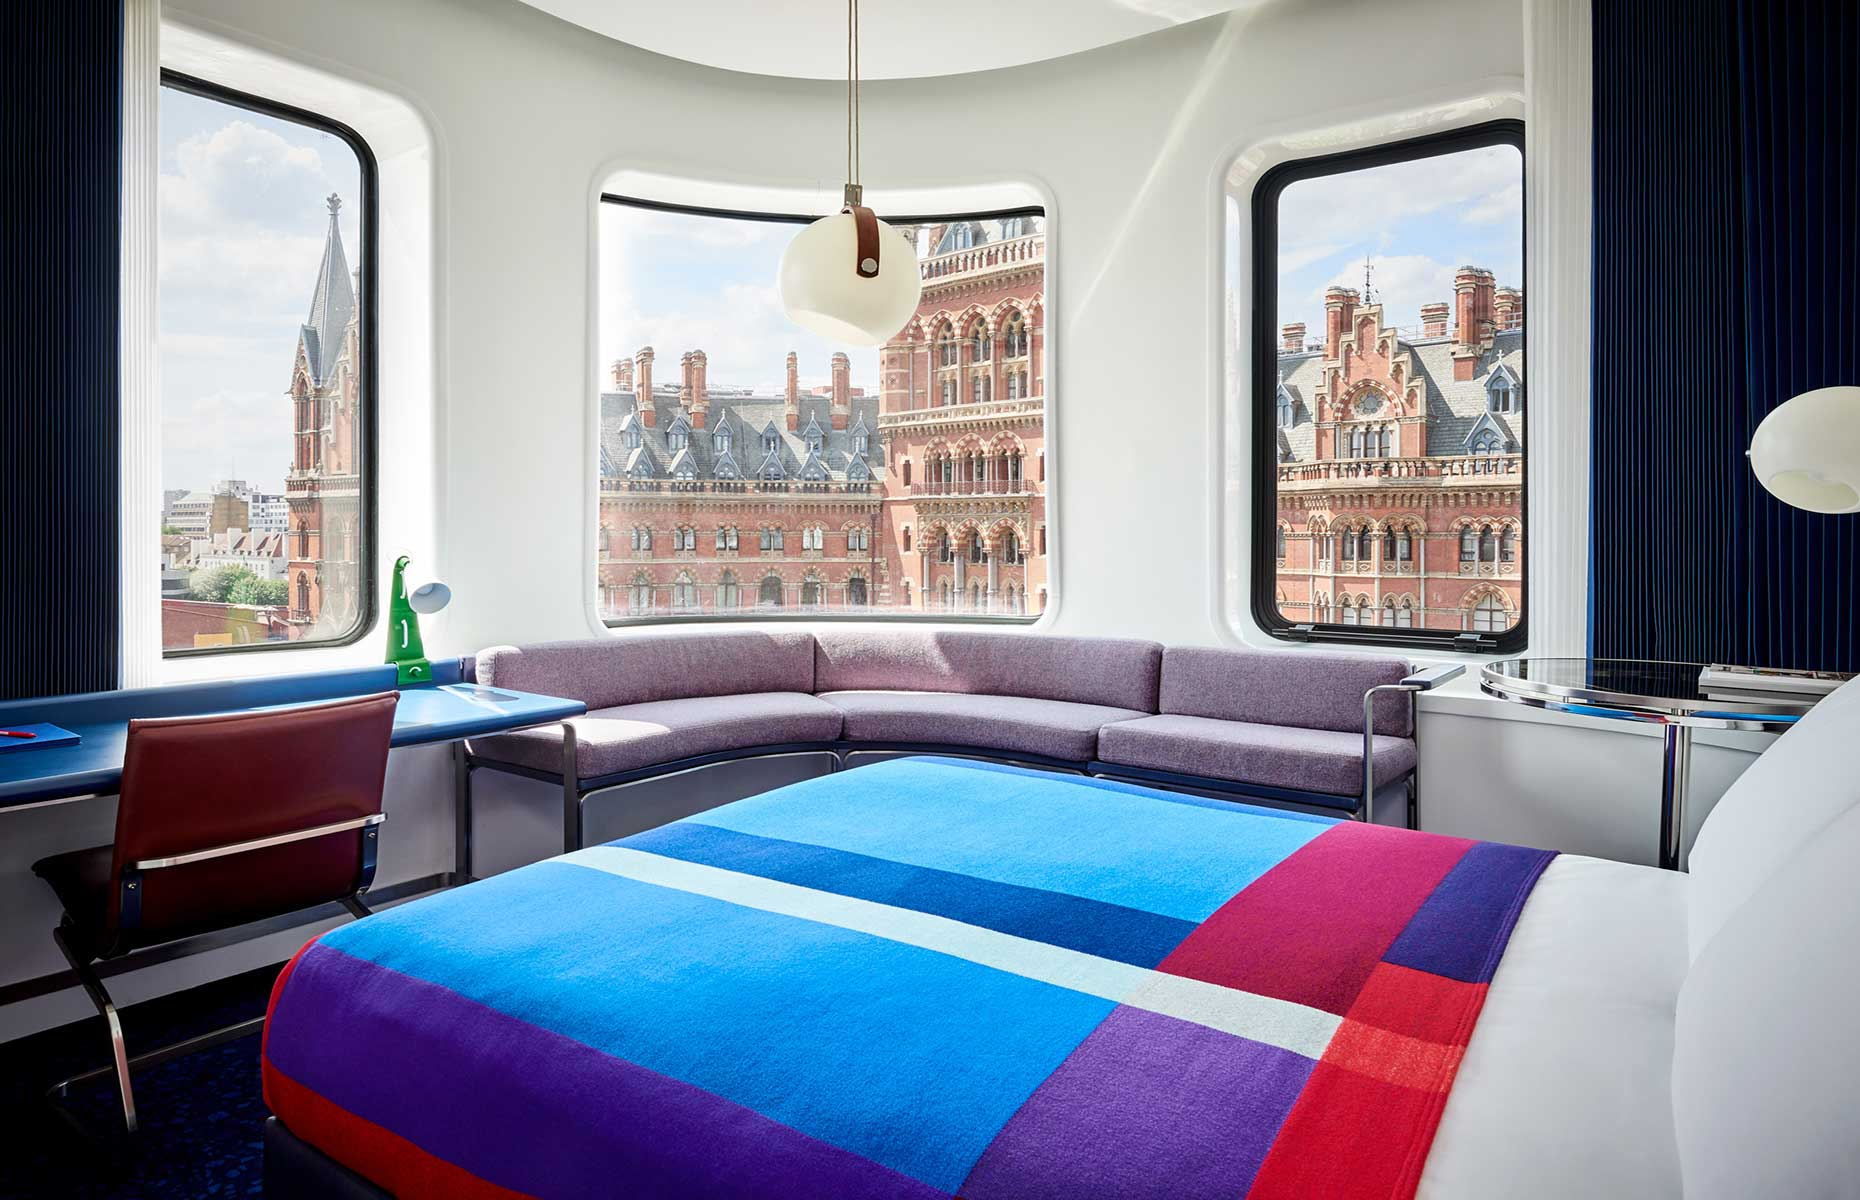 Double room at The Standard (Image: David Cleveland/The Standard)